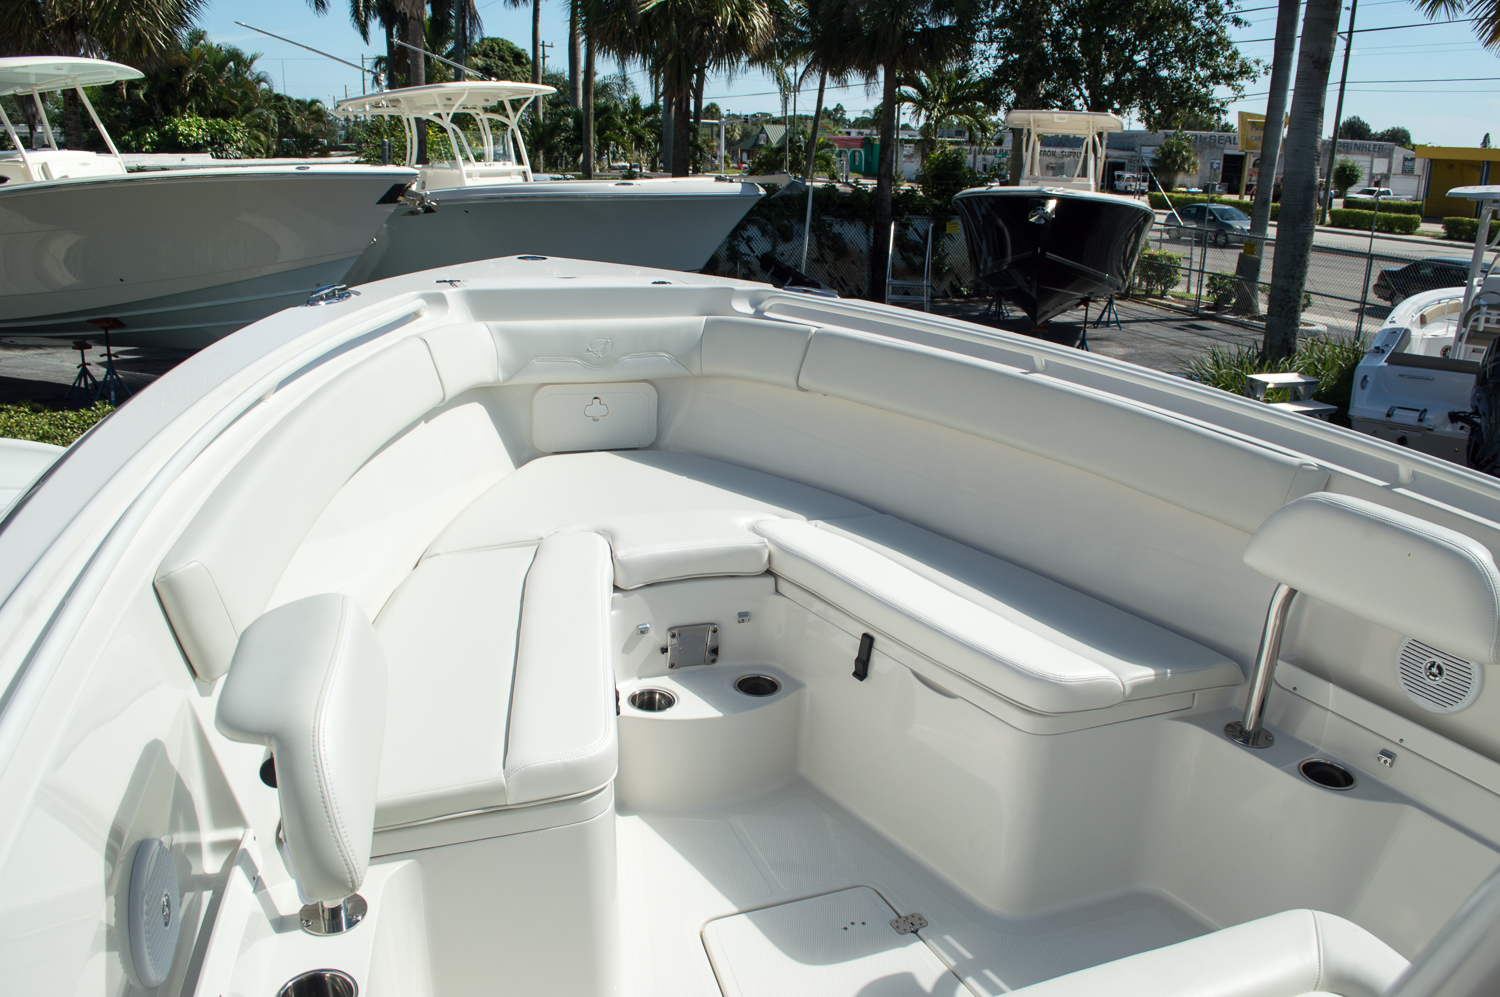 New 2015 sailfish 290 cc center console boat for sale in for Burns motors in mission tx